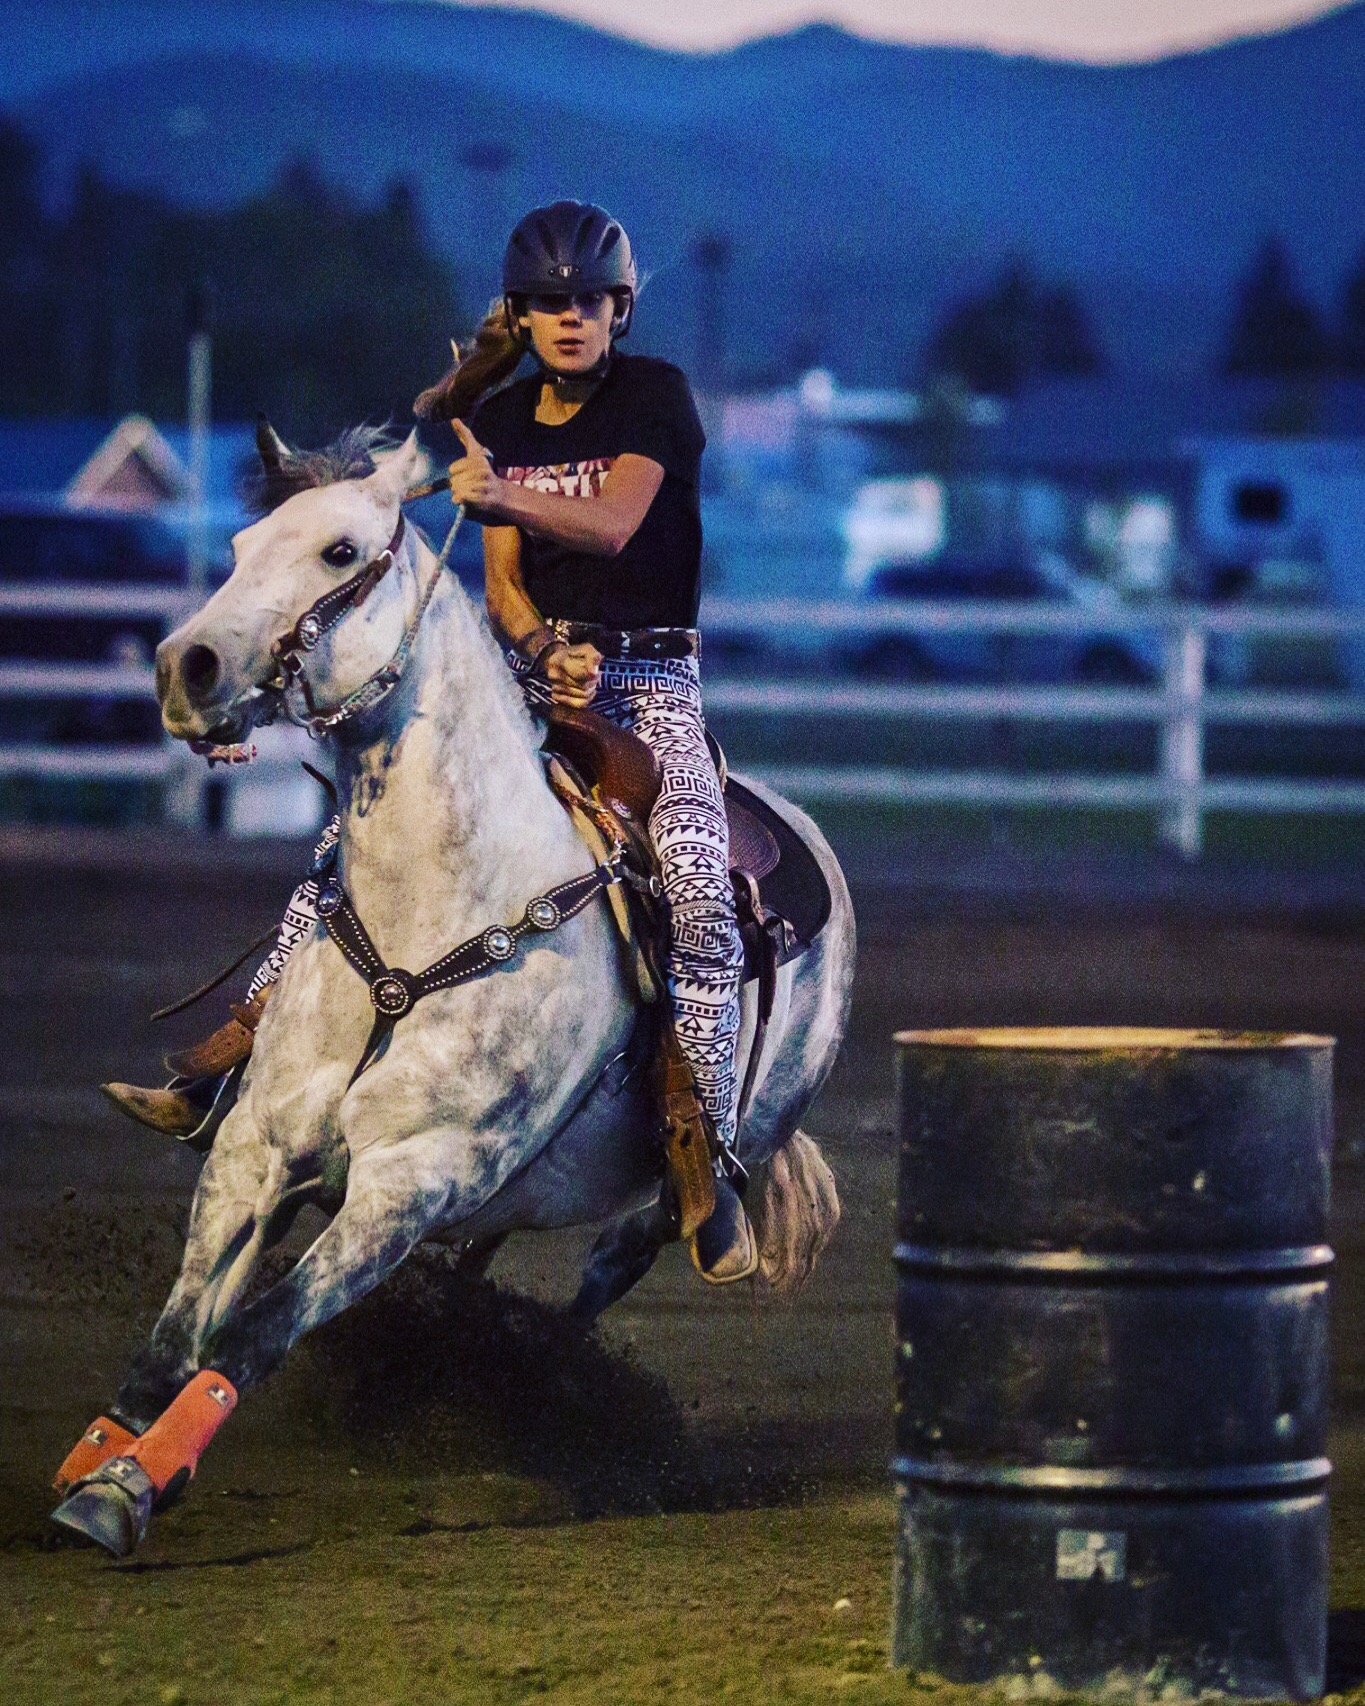 Roxanne Koler, Barrel Racing